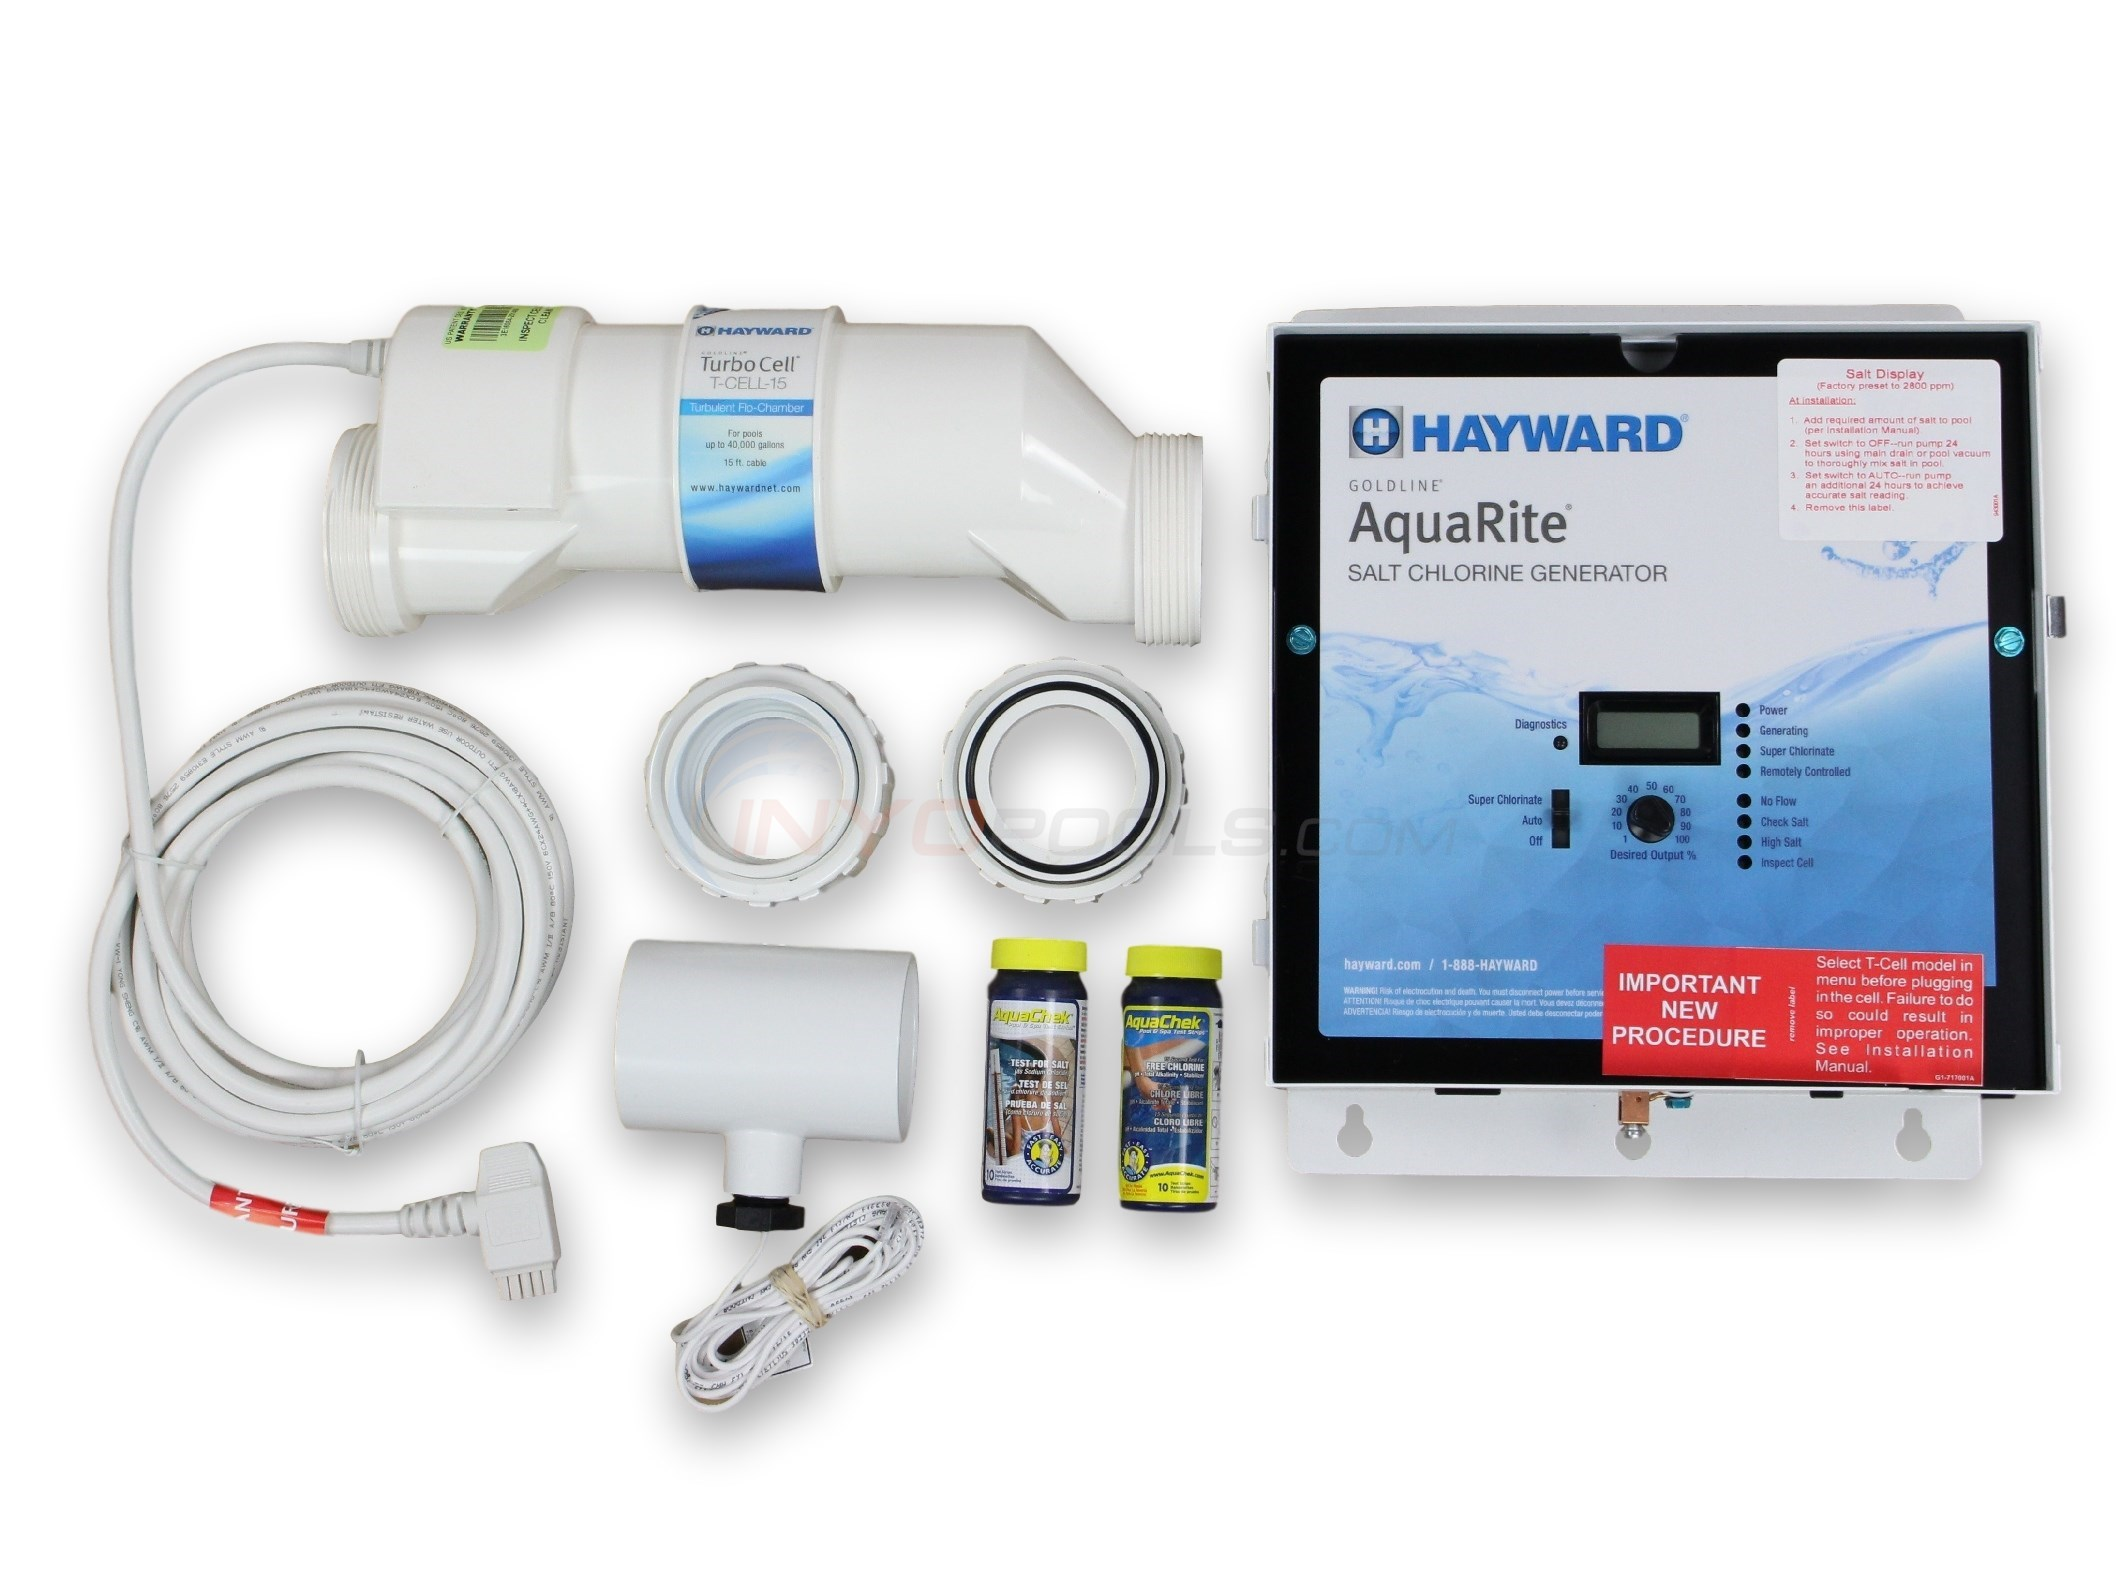 How To Troubleshoot A Hayward Aqua Rite 3 Way Switch Diagnosis As With Any Automatic Salt Chlorine Generator Tune Ups Are Needed From Time Troubleshooting Can Be Quick And Simple